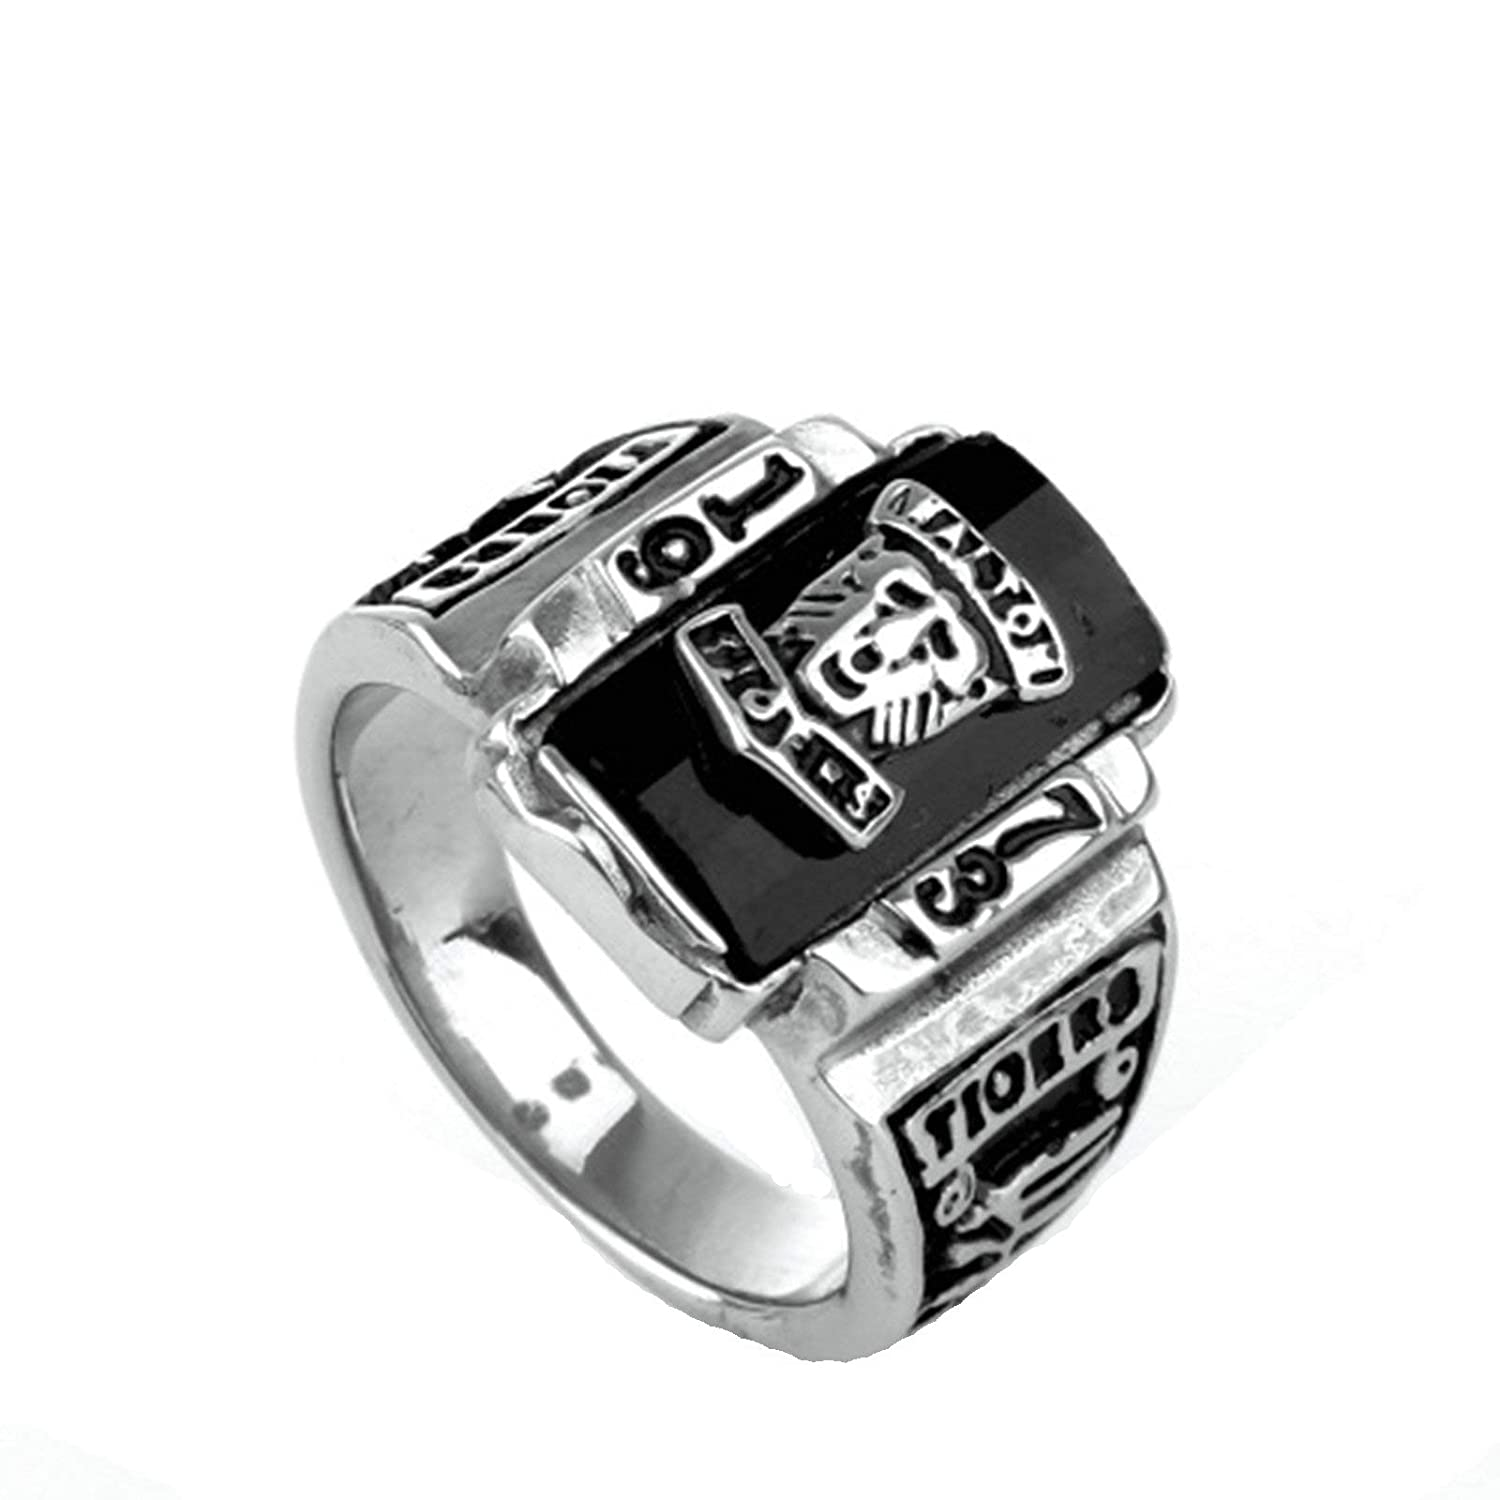 MoAndy Stainless Steel Jewelry Stainless Steel Ring for He Wedding Ring King Size 8